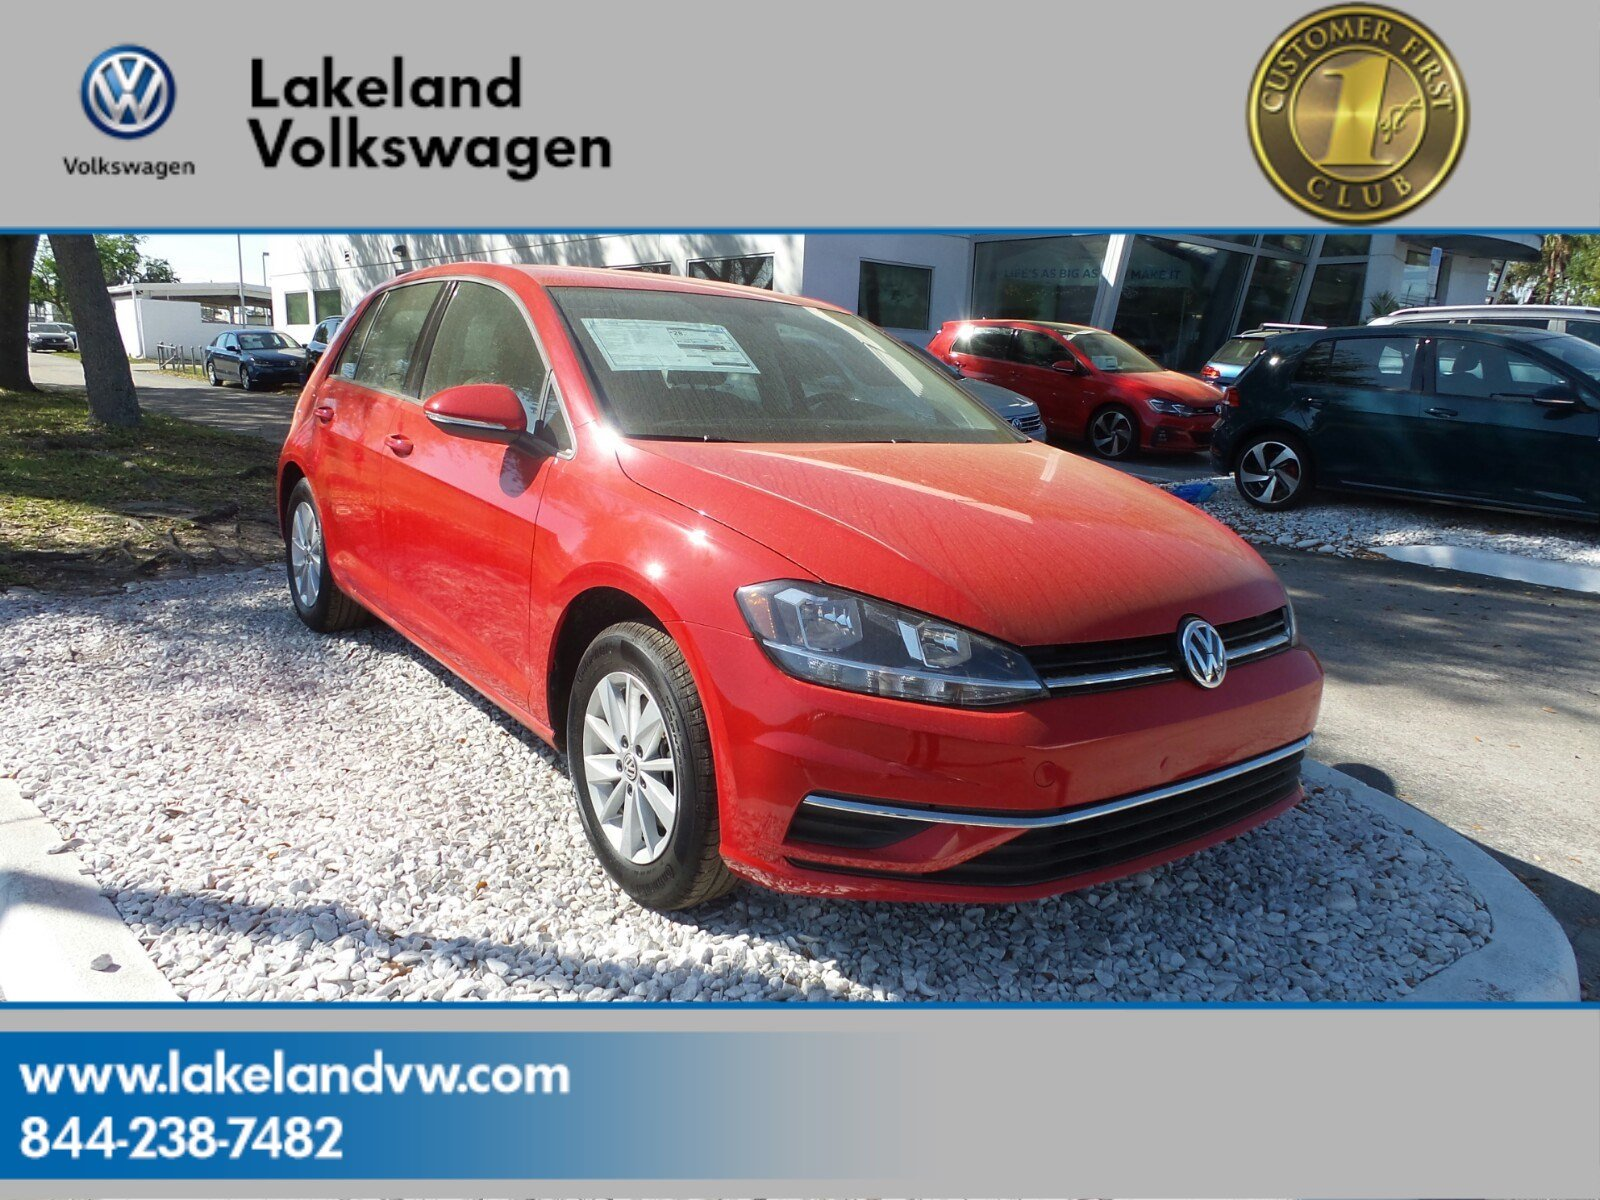 new volkswagen fwd hatchback in lakeland inventory tsi golf se